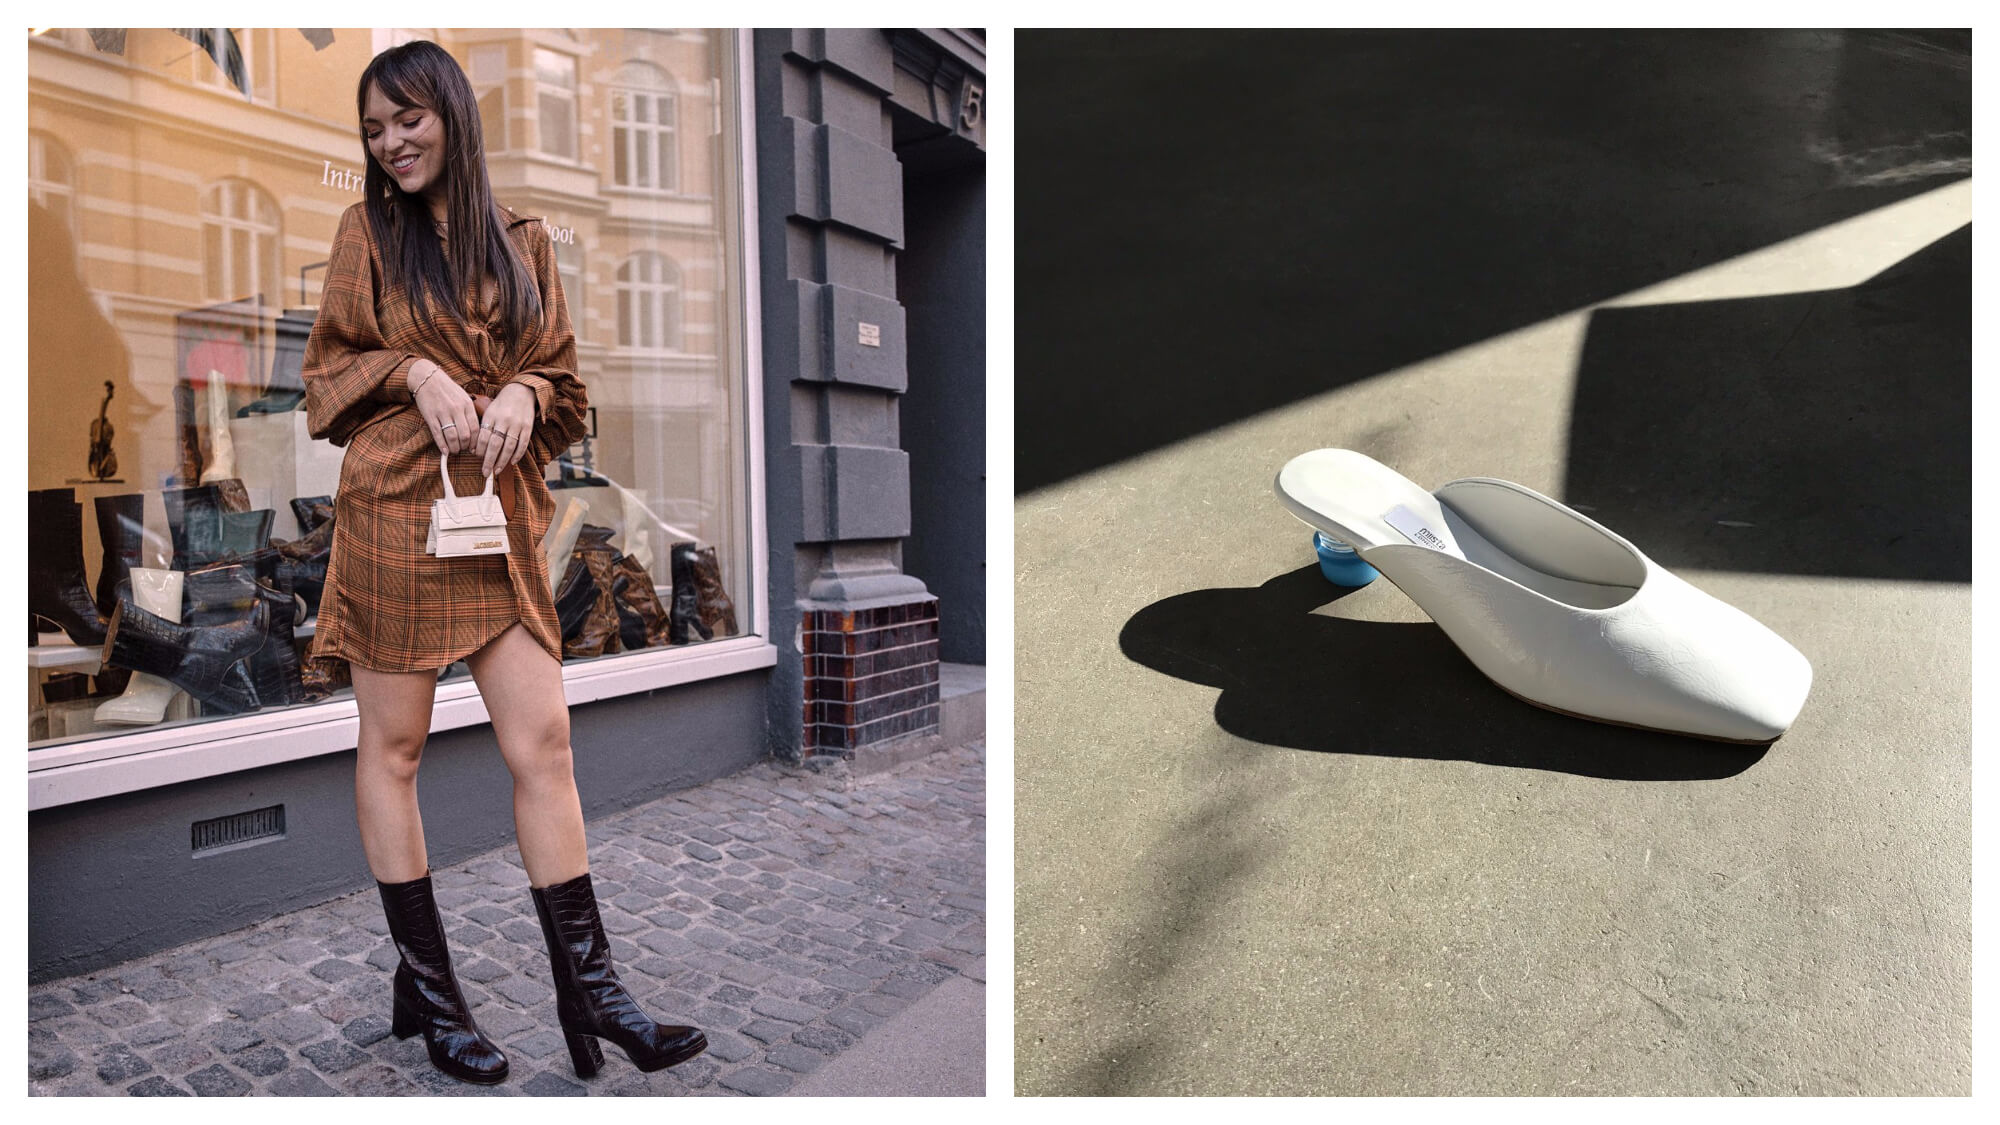 Left: a smiling woman standing on a cobblestone footpath in front of a shop window. She's wearing a brown dress with a white miniature handbag and black heeled boots. Right: a white slip on mule shoe with a blue plastic bottle top lid as the heel.